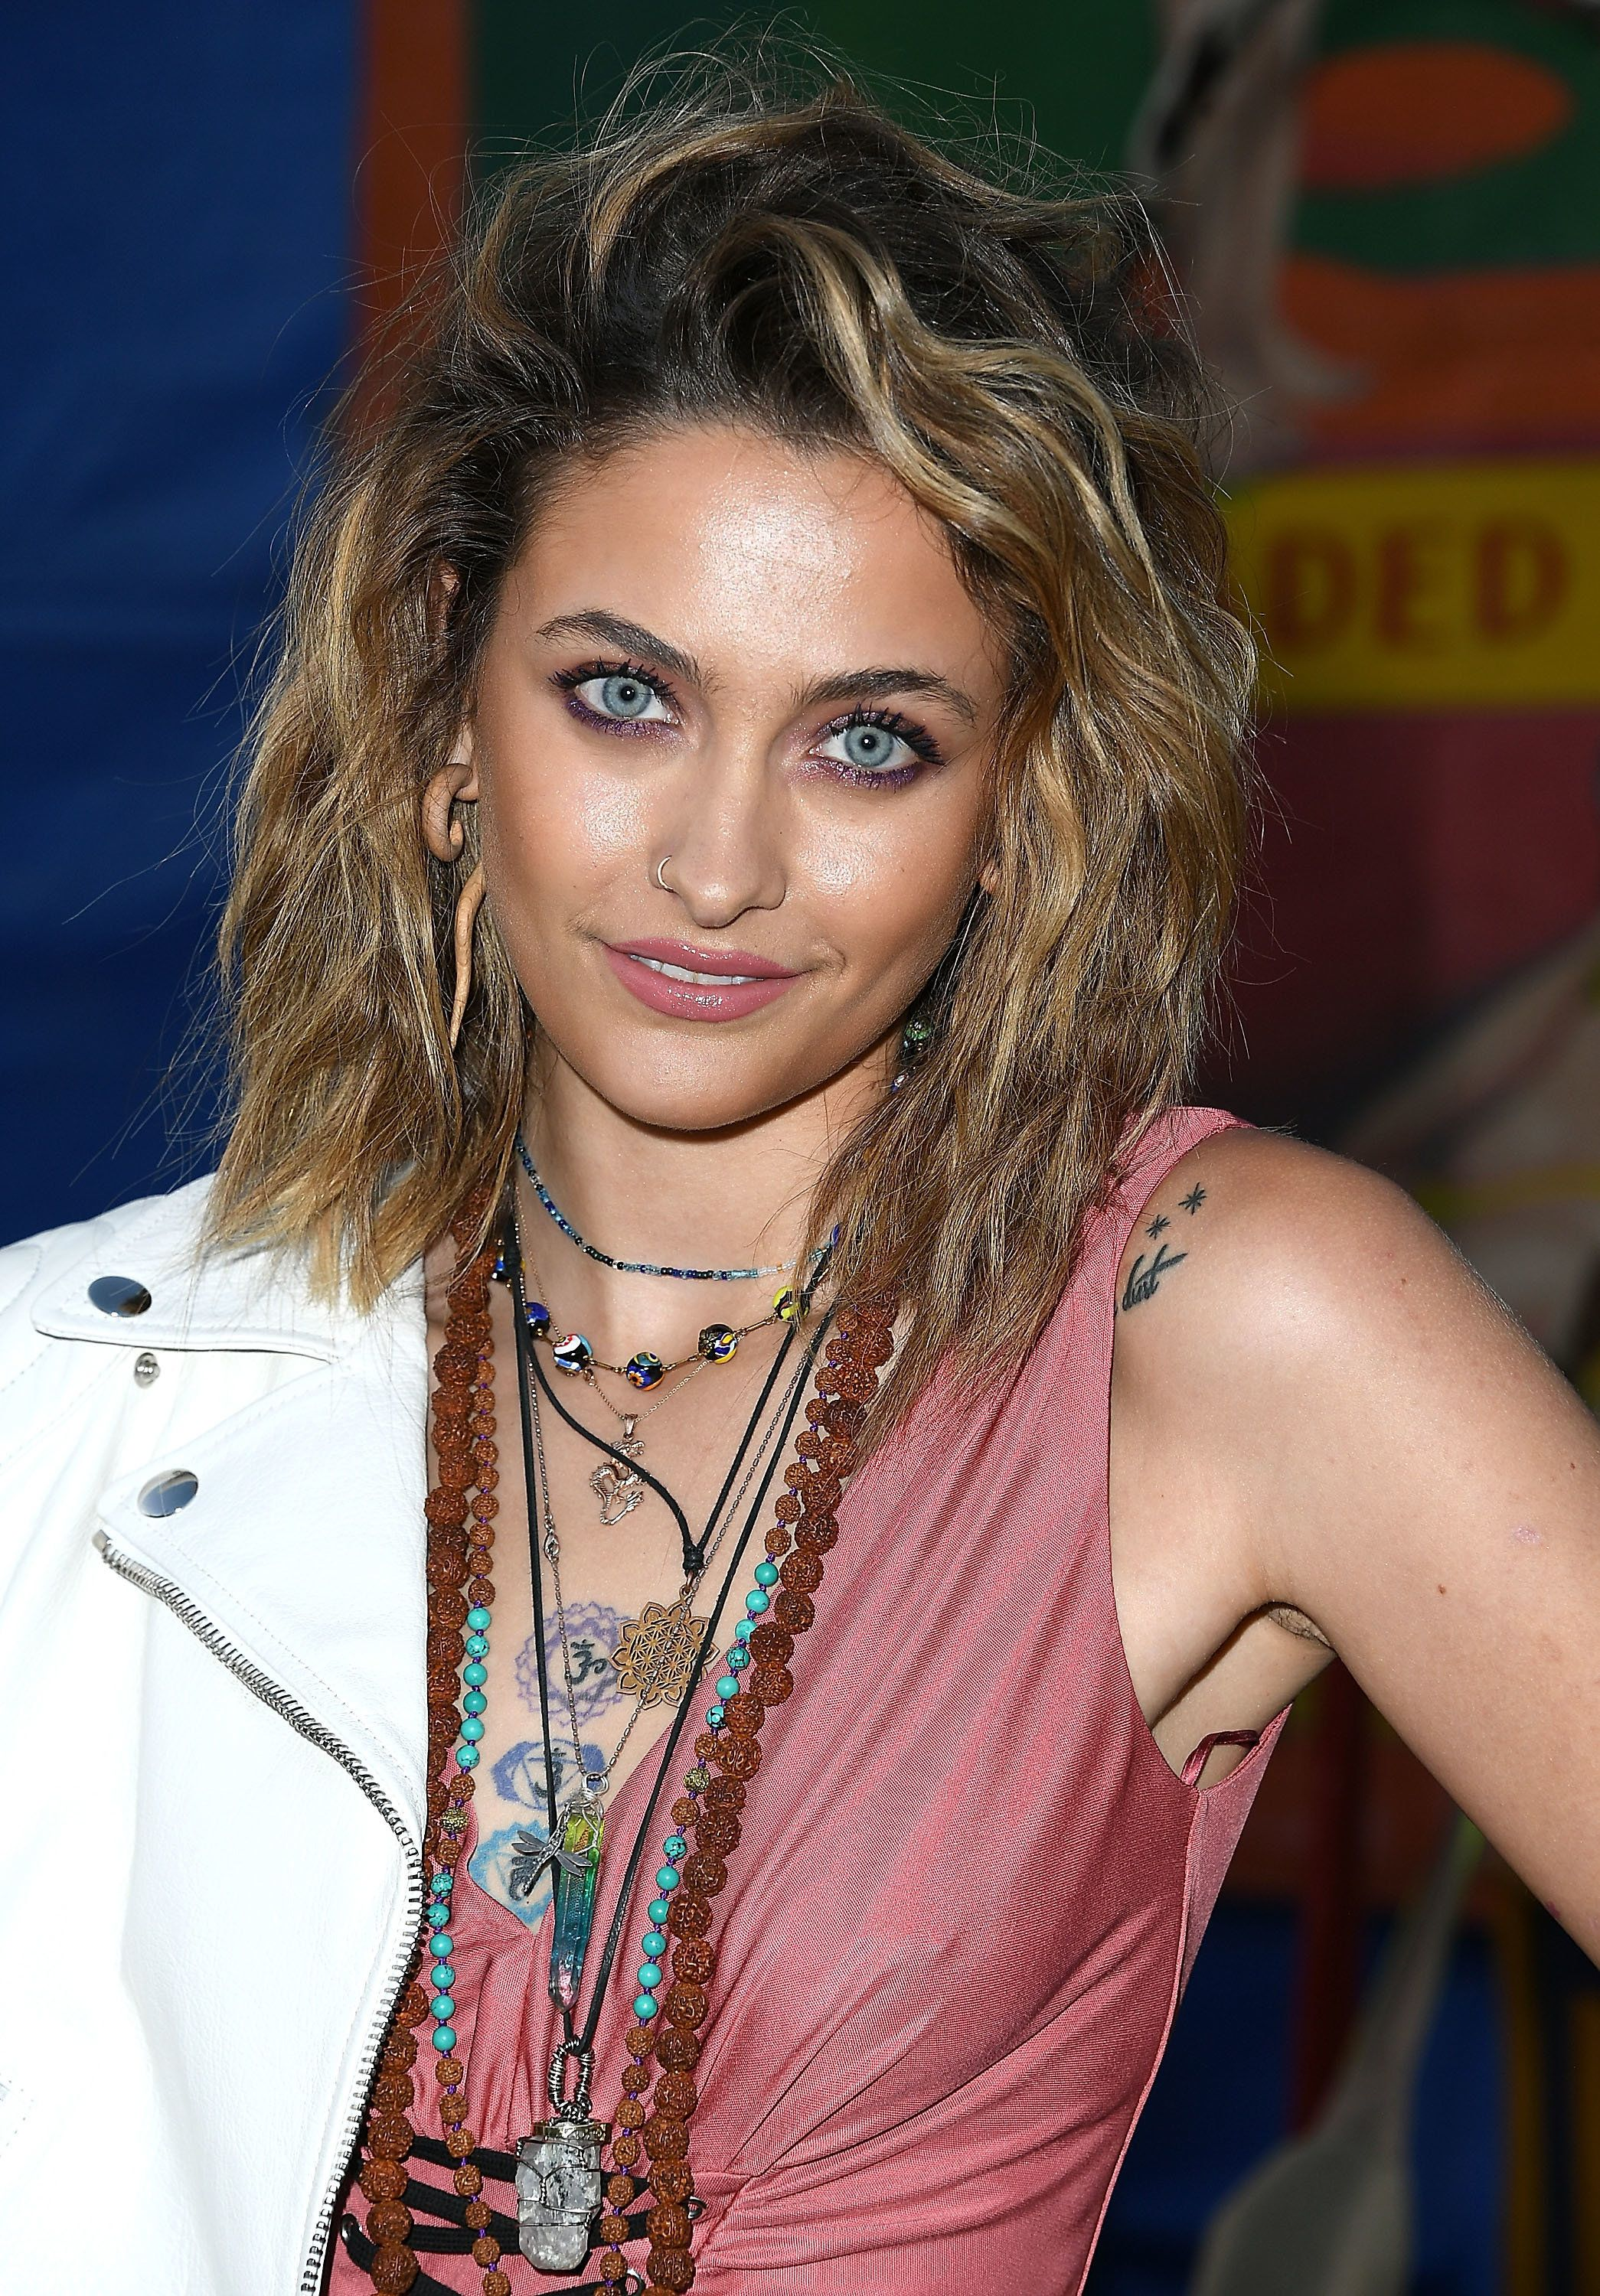 BURBANK, CA - JUNE 08:  Paris Jackson arrives at the Moschino Spring/Summer 19 Menswear And Women's Resort Collection at Los Angeles Equestrian Center on June 8, 2018 in Burbank, California.  (Photo by Steve Granitz/WireImage)